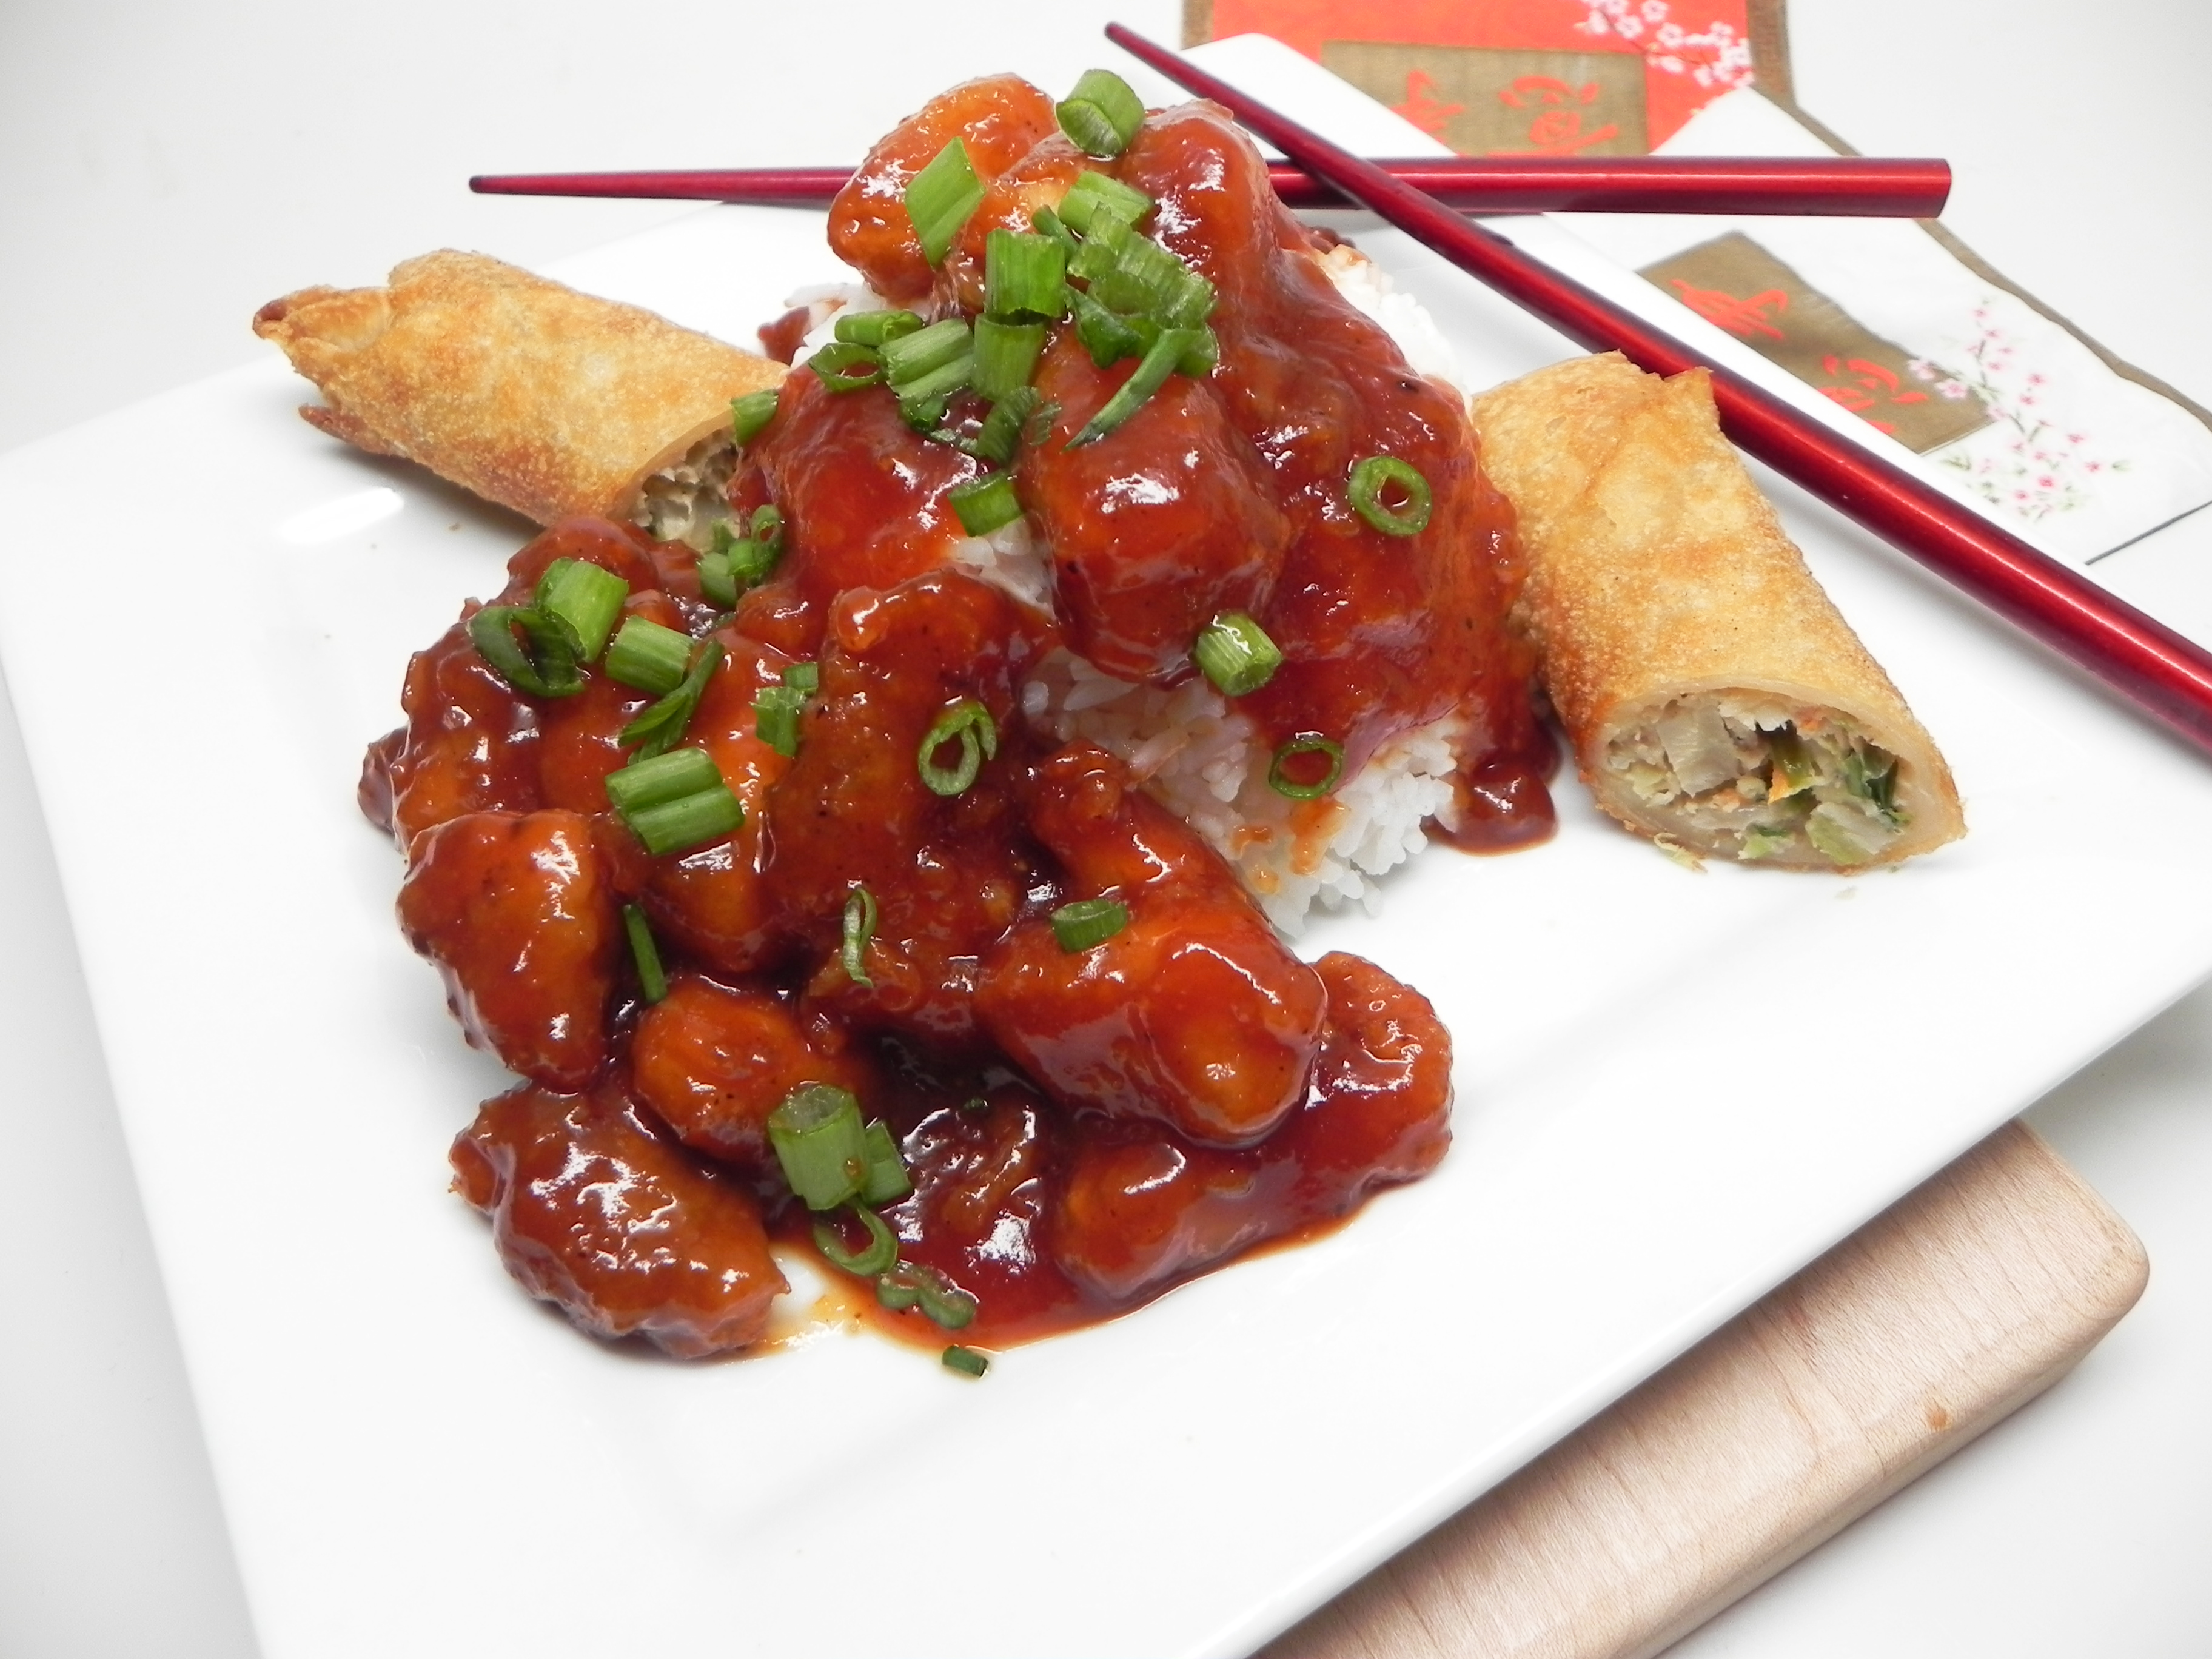 """Skip takeout and make your own sweet and sour pork at home,"" says Soup Loving Nicole. ""I like to toss some egg rolls in the air fryer while it is hot so that the meal has that full Chinese takeout feel to it. Serve over rice if desired."""